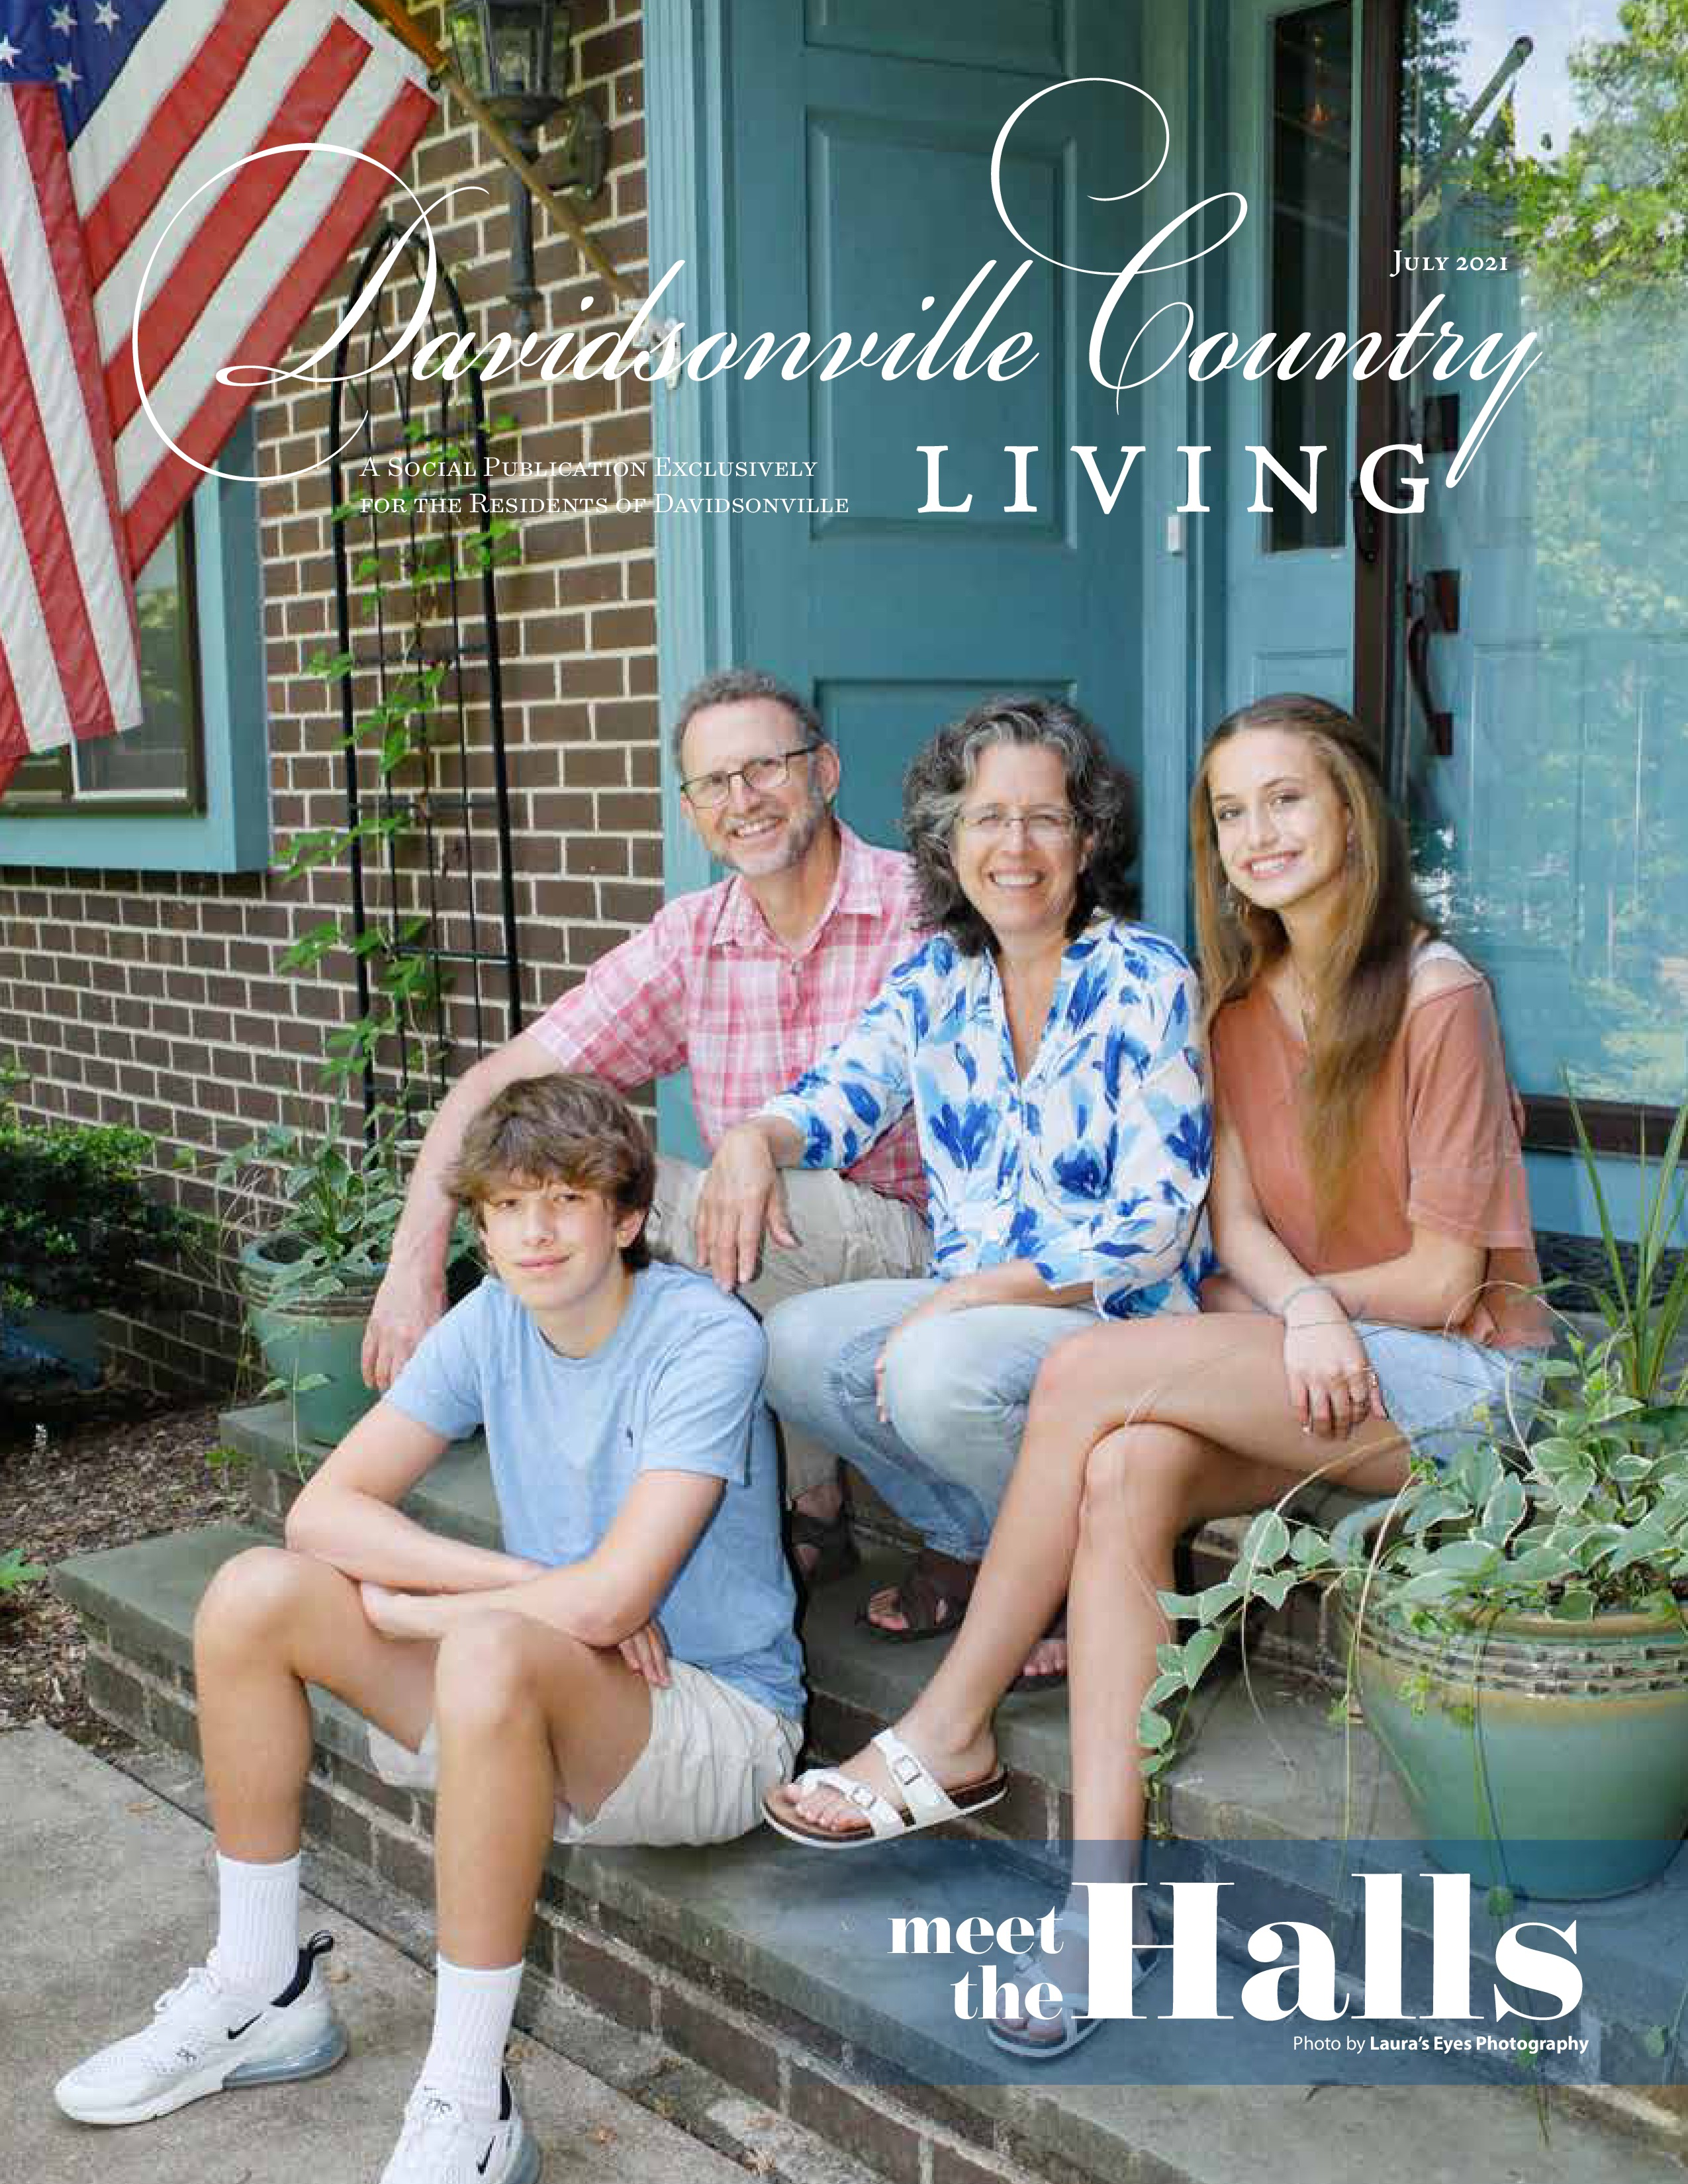 Davidsonville Country Living 2021-07-01